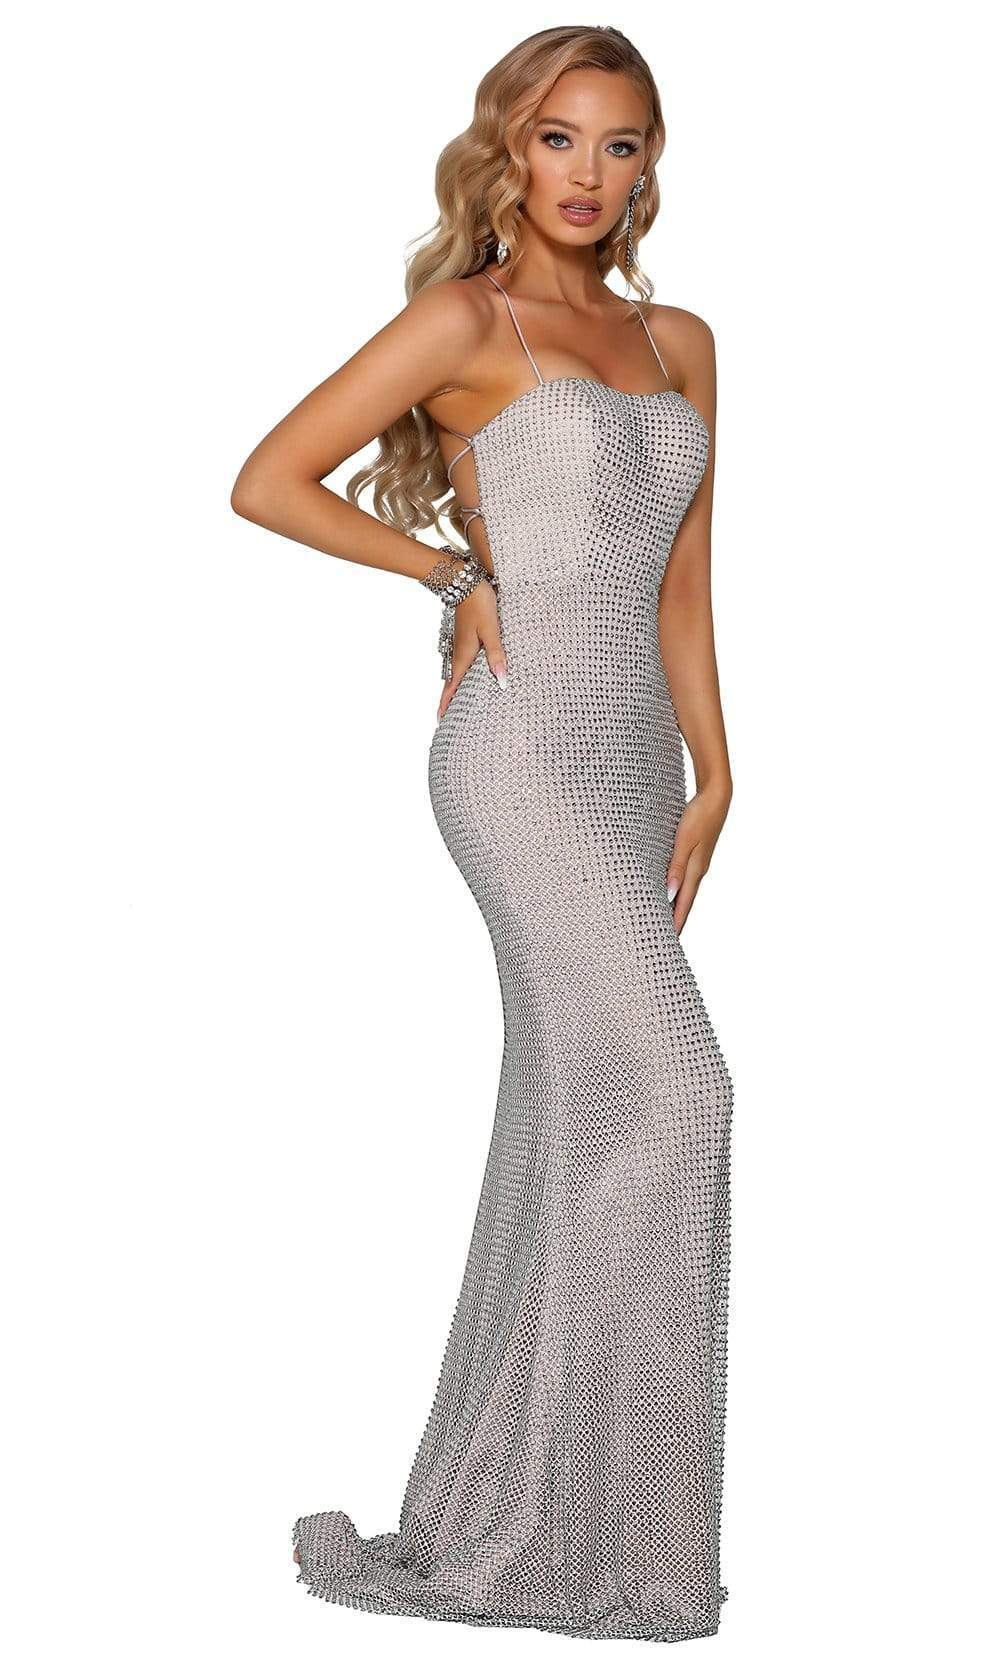 Portia and Scarlett - PS6328 Strappy Open Back Beaded Net Fitted Gown from Portia and Scarlett